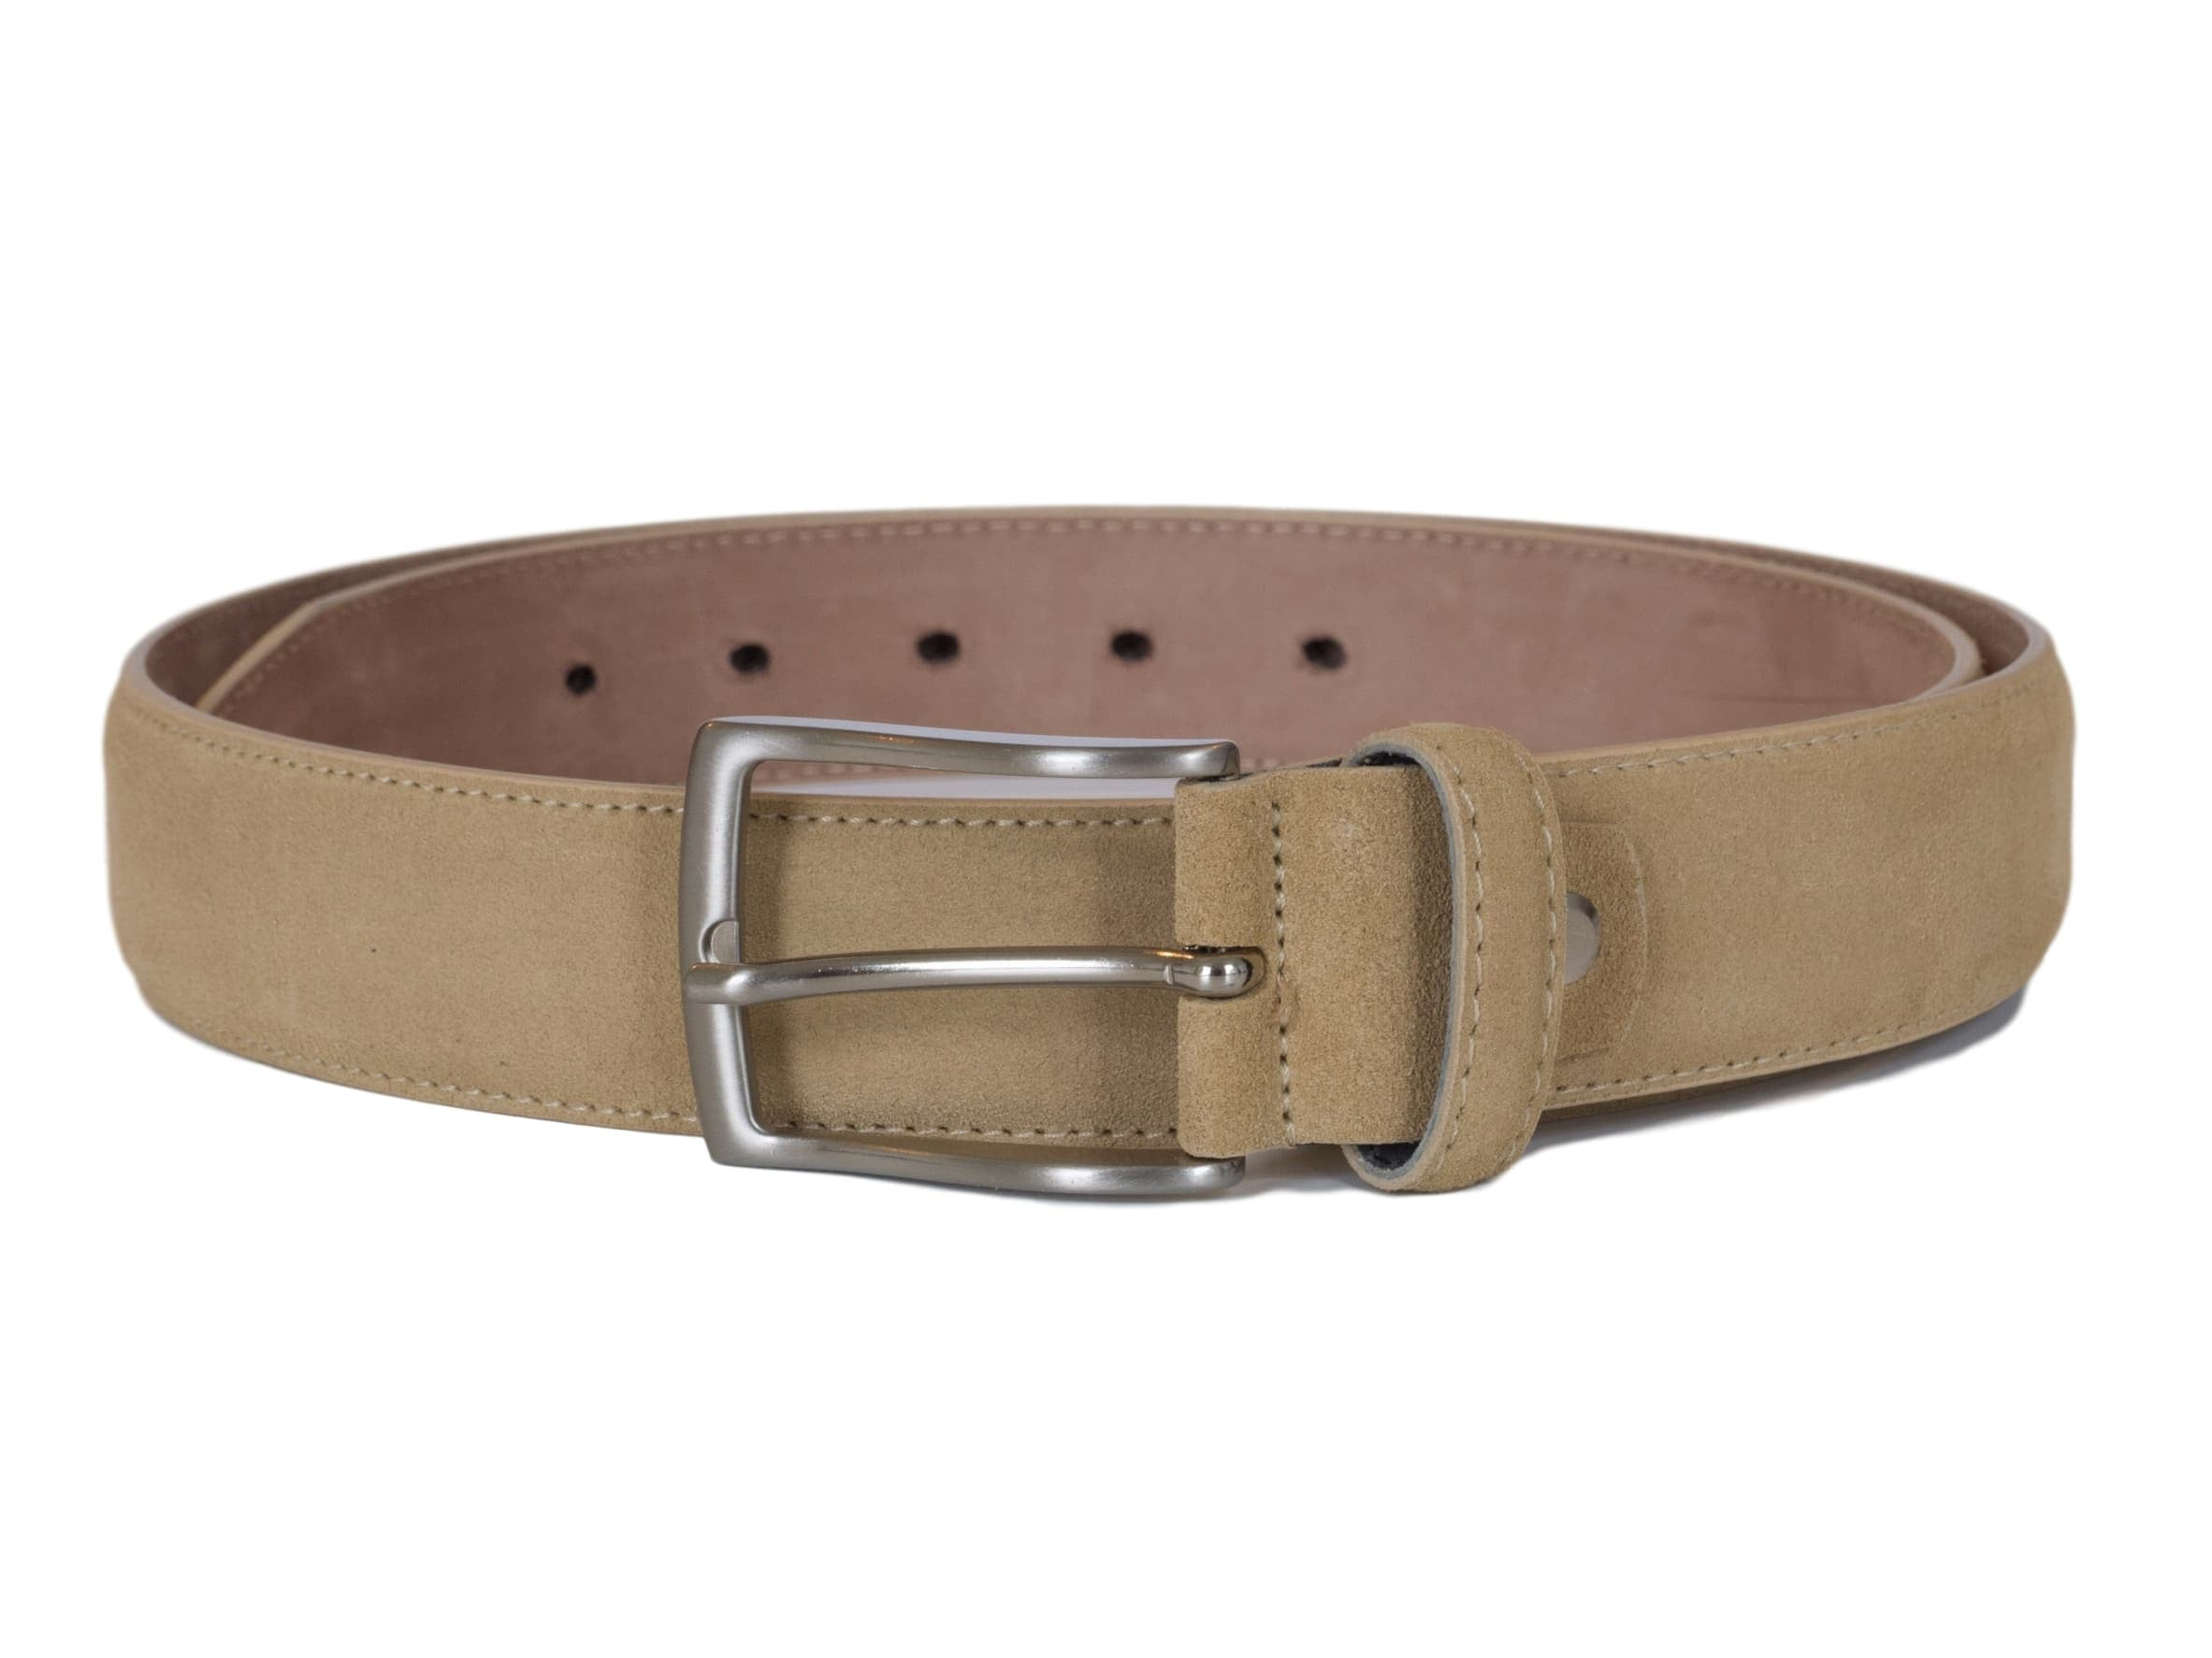 Beige suede leather belt